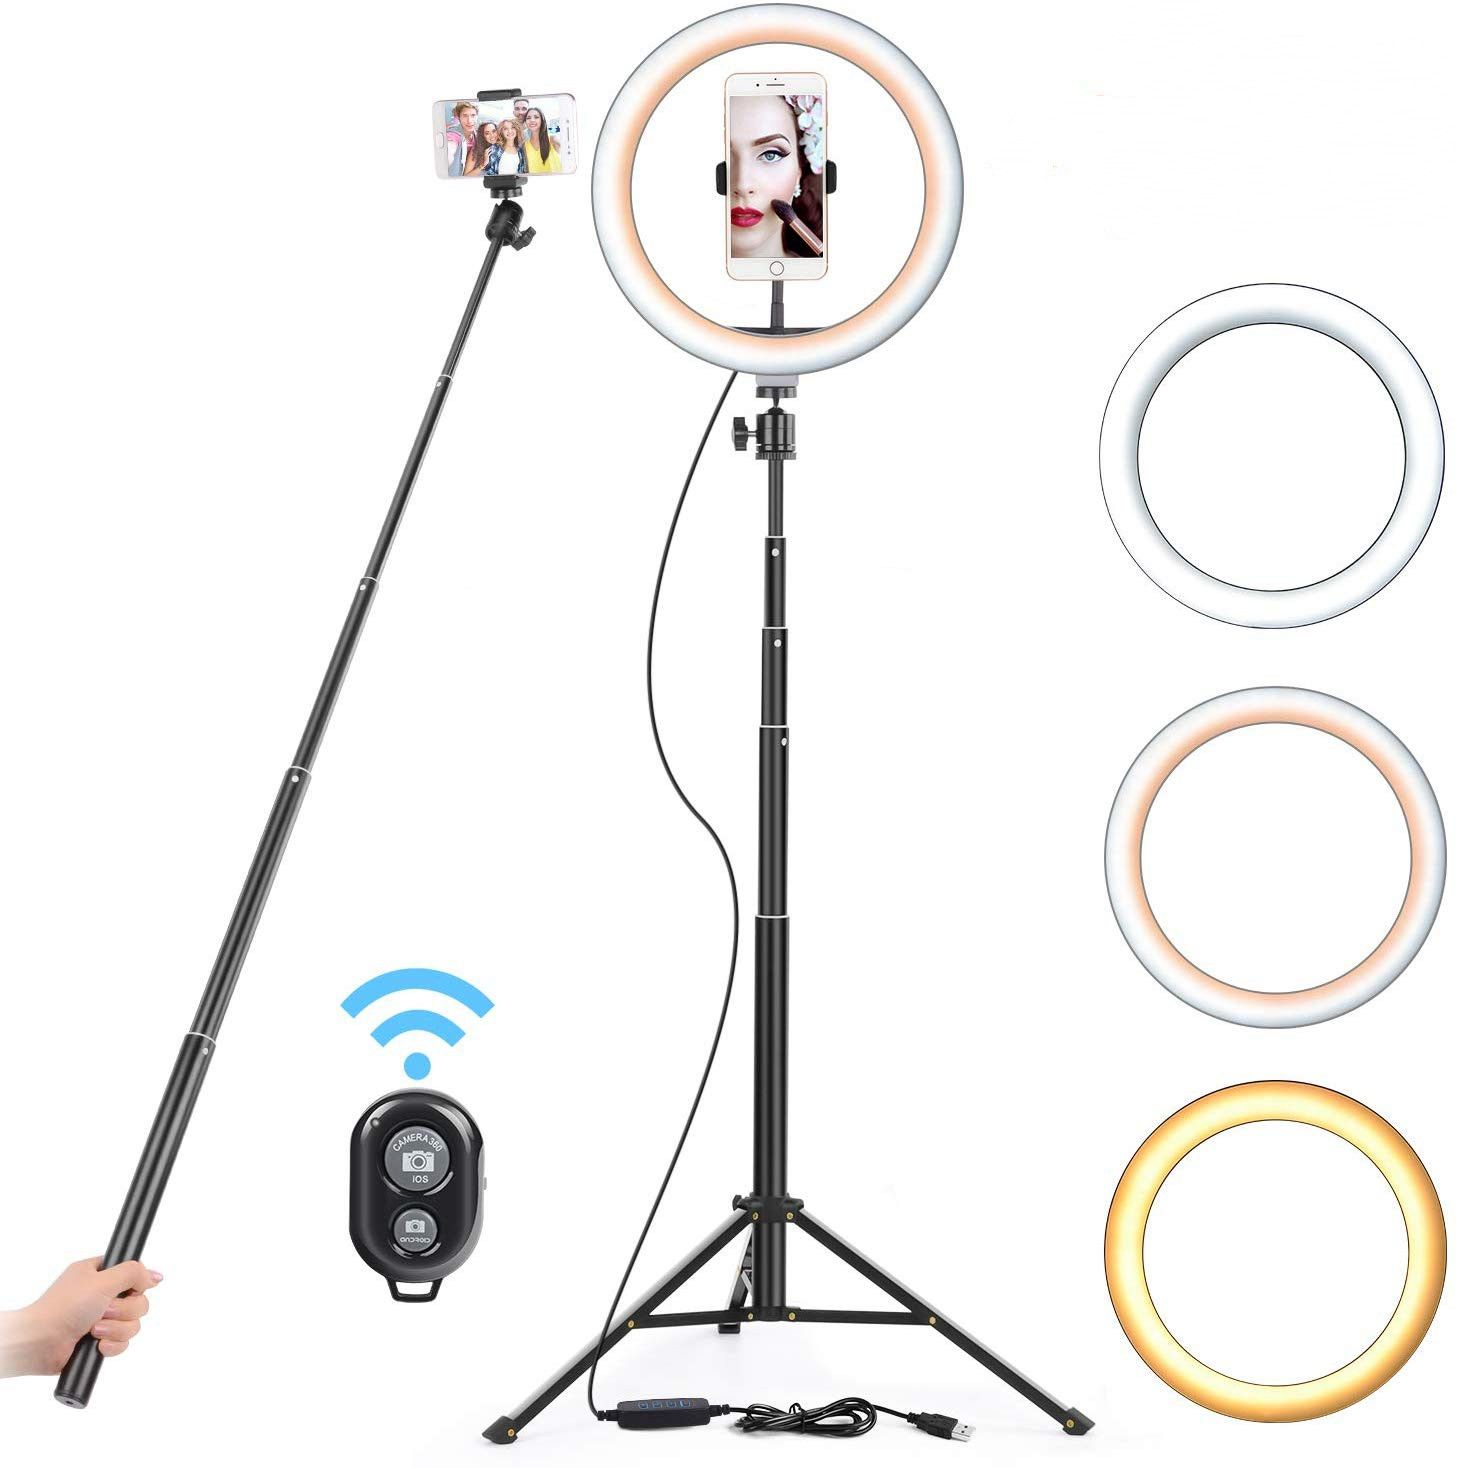 16 26cm USB LED Ring Light Photography Flash Lamp With 130cm Tripod Stand For Makeup Youtube VK Tik Tok Video Dimmable Lighting